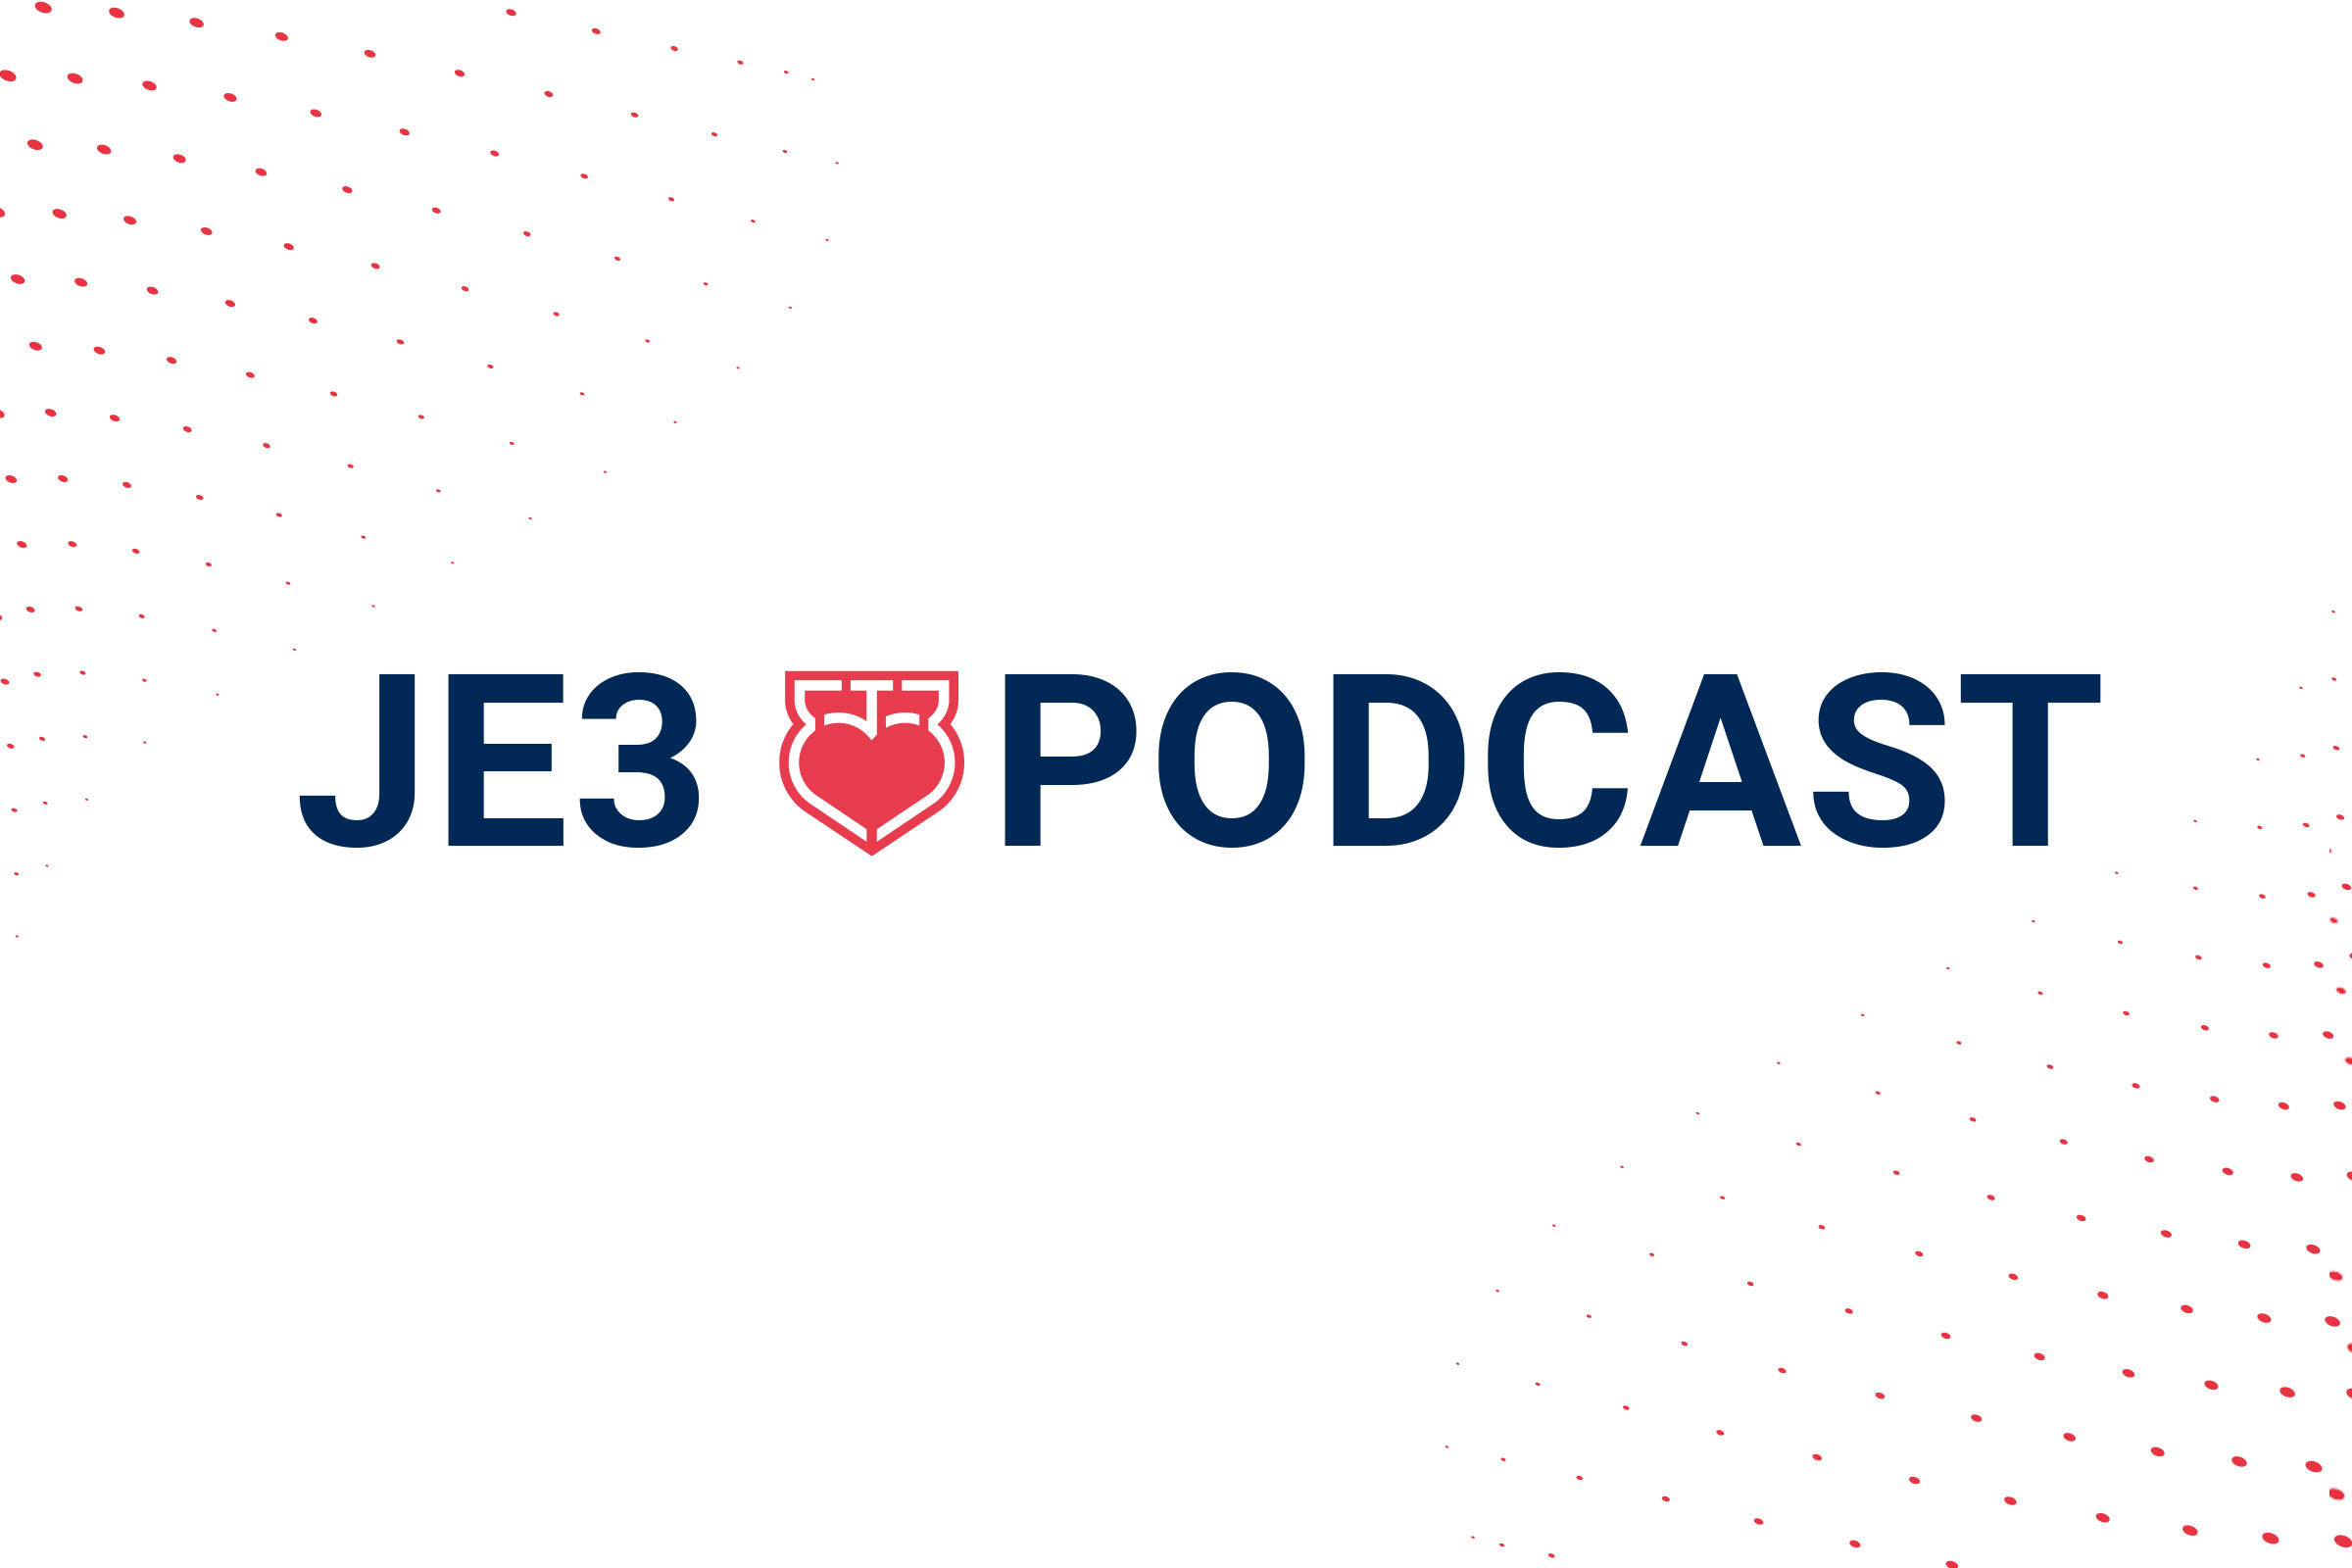 JE3 Podcast Launch